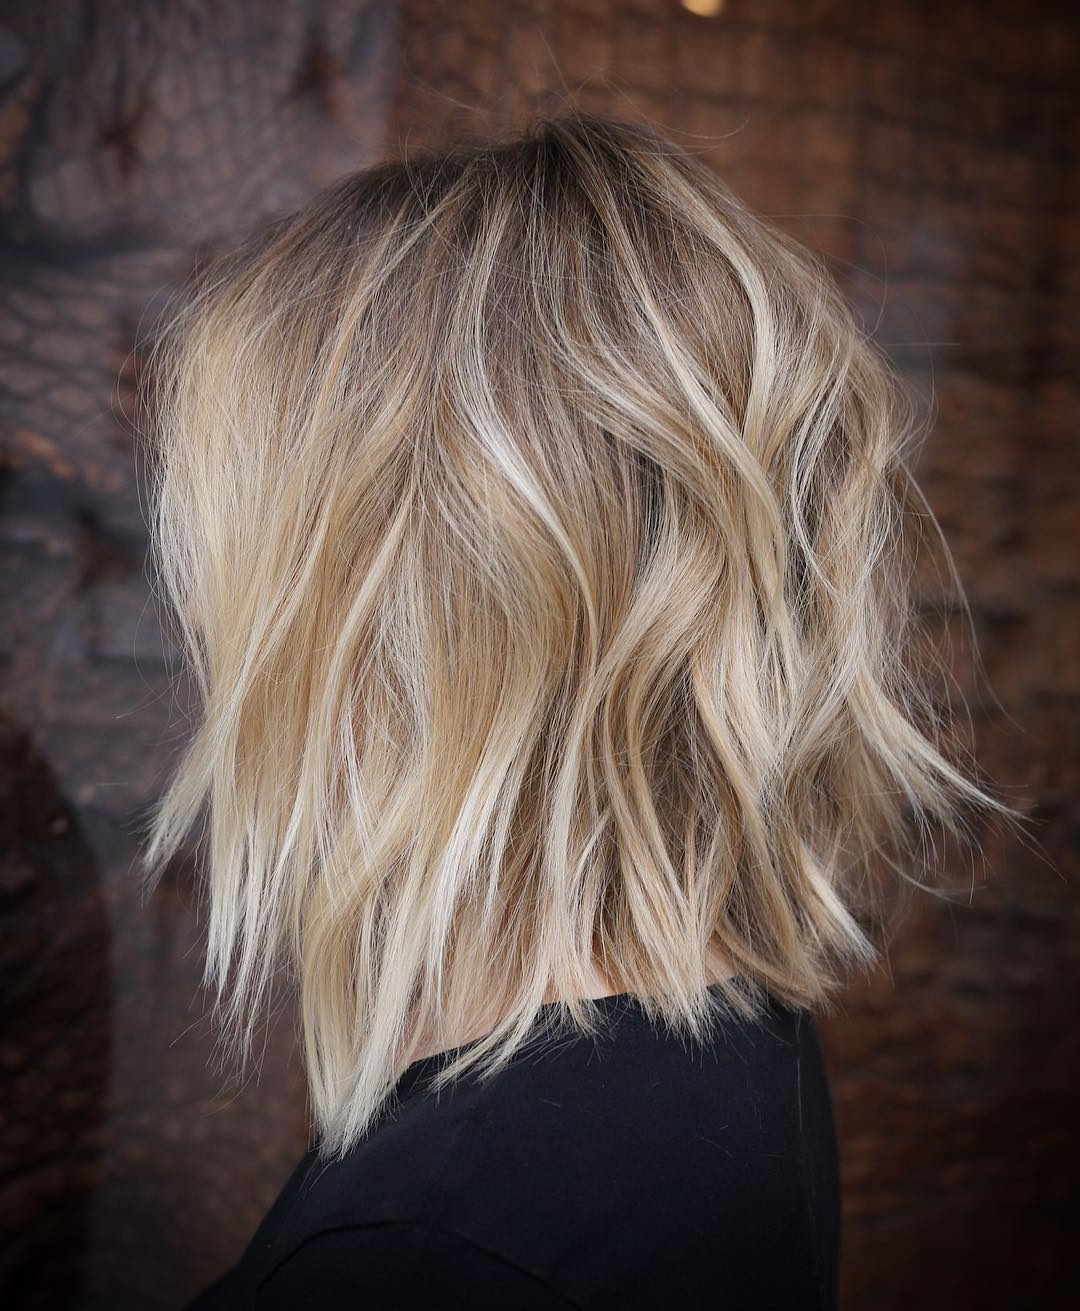 10 Stylish Lob Hairstyle Ideas, Best Shoulder Length Hair Intended For 2020 Straight Layered Hairstyles With Twisted Top (View 2 of 20)